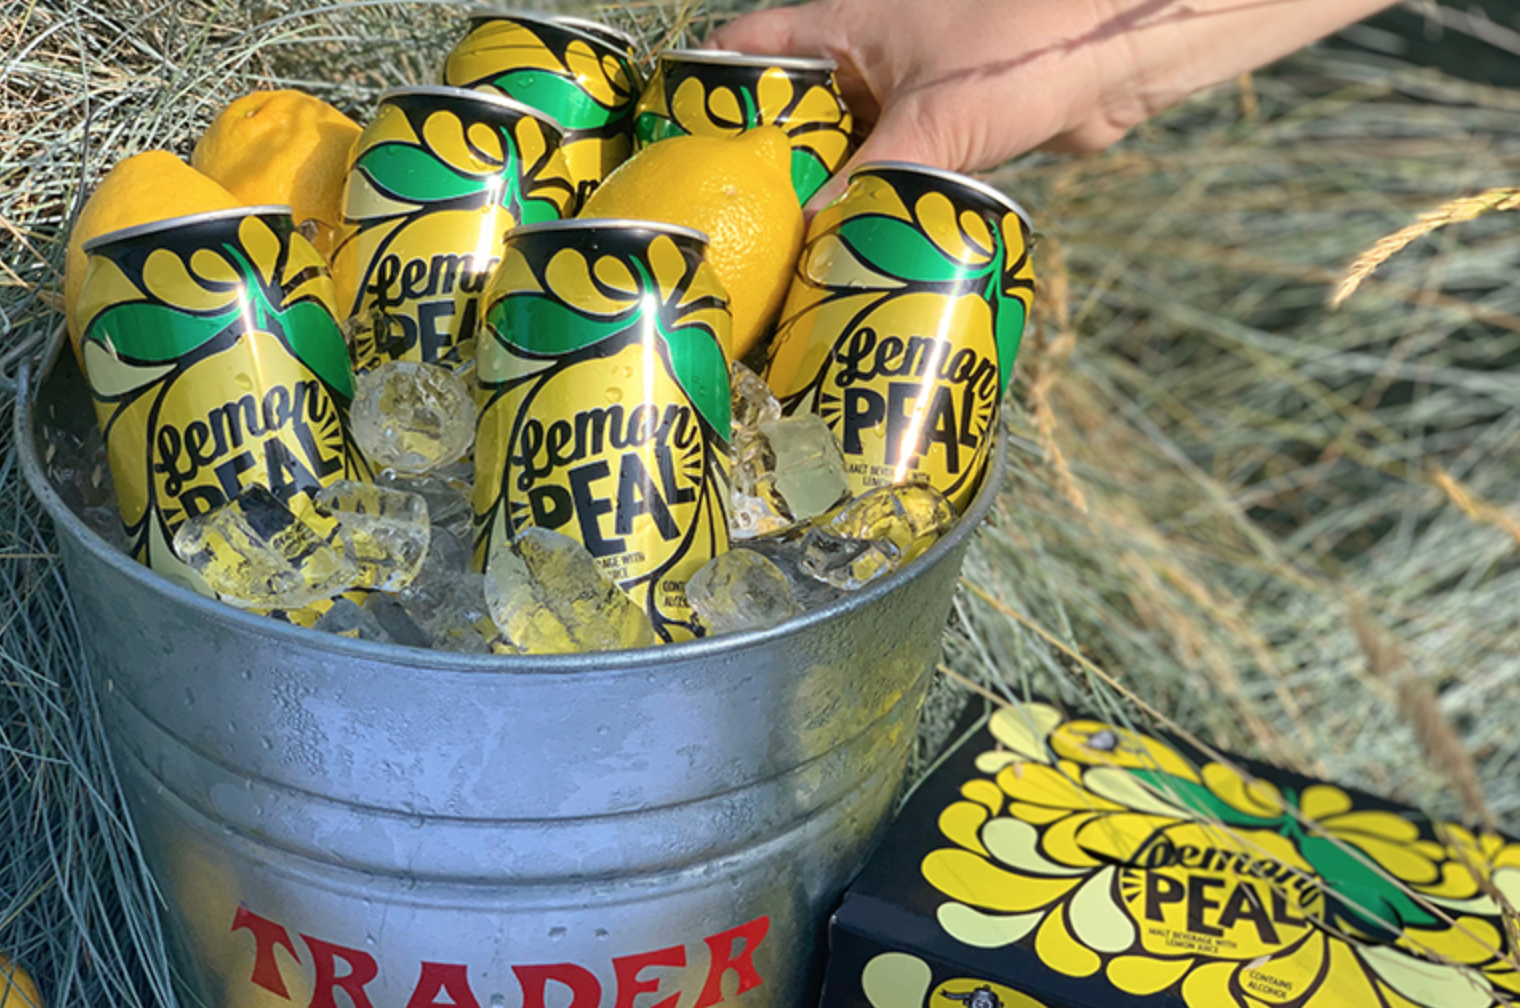 Trader Joe's Just Debuted Hard Lemonade in a Can